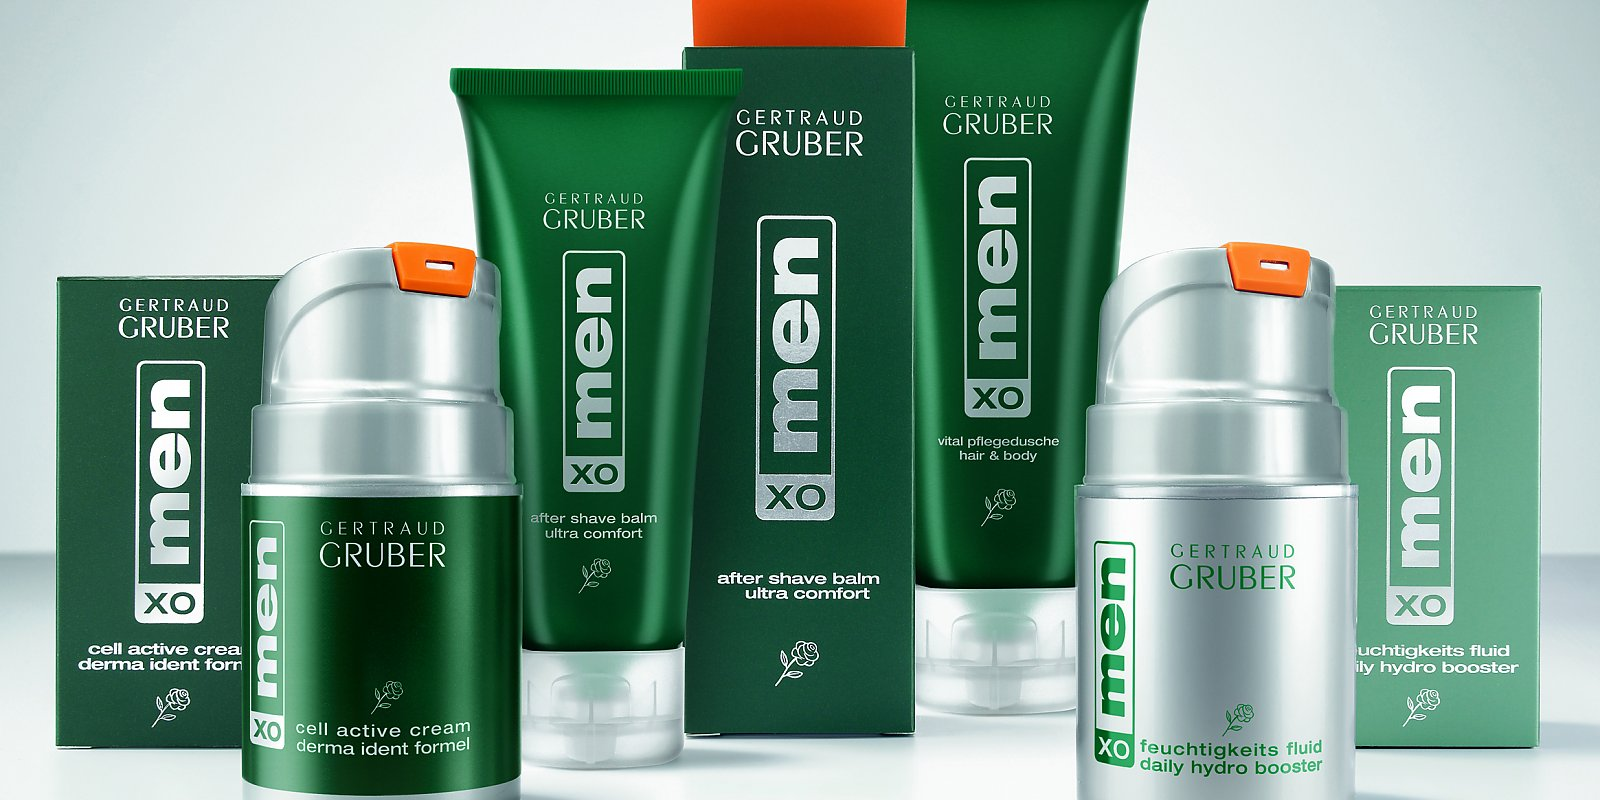 Gertraud Gruber menXO products